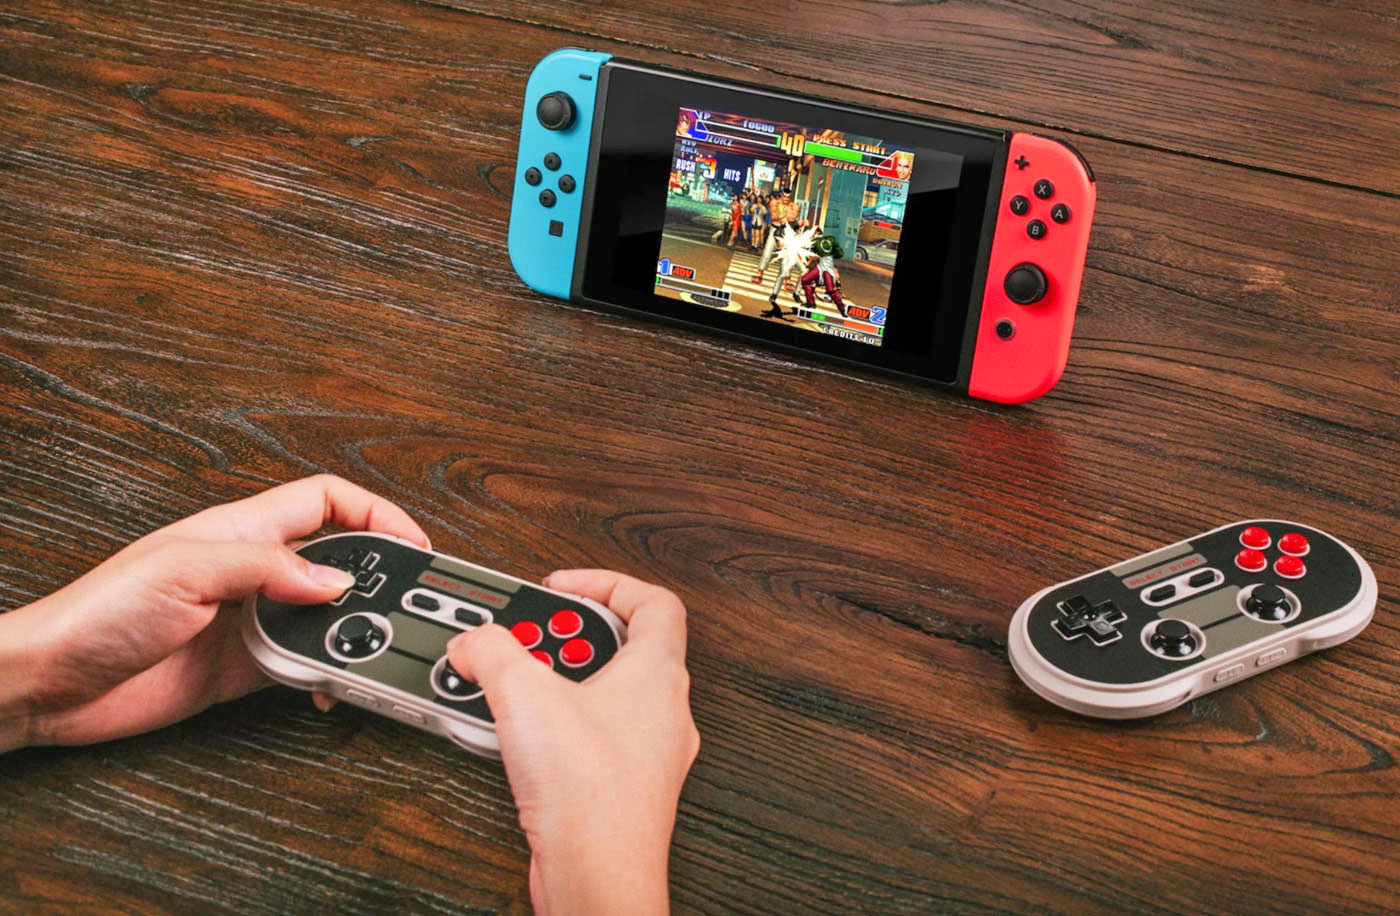 8Bitdo releases firmware update to fix controller lag